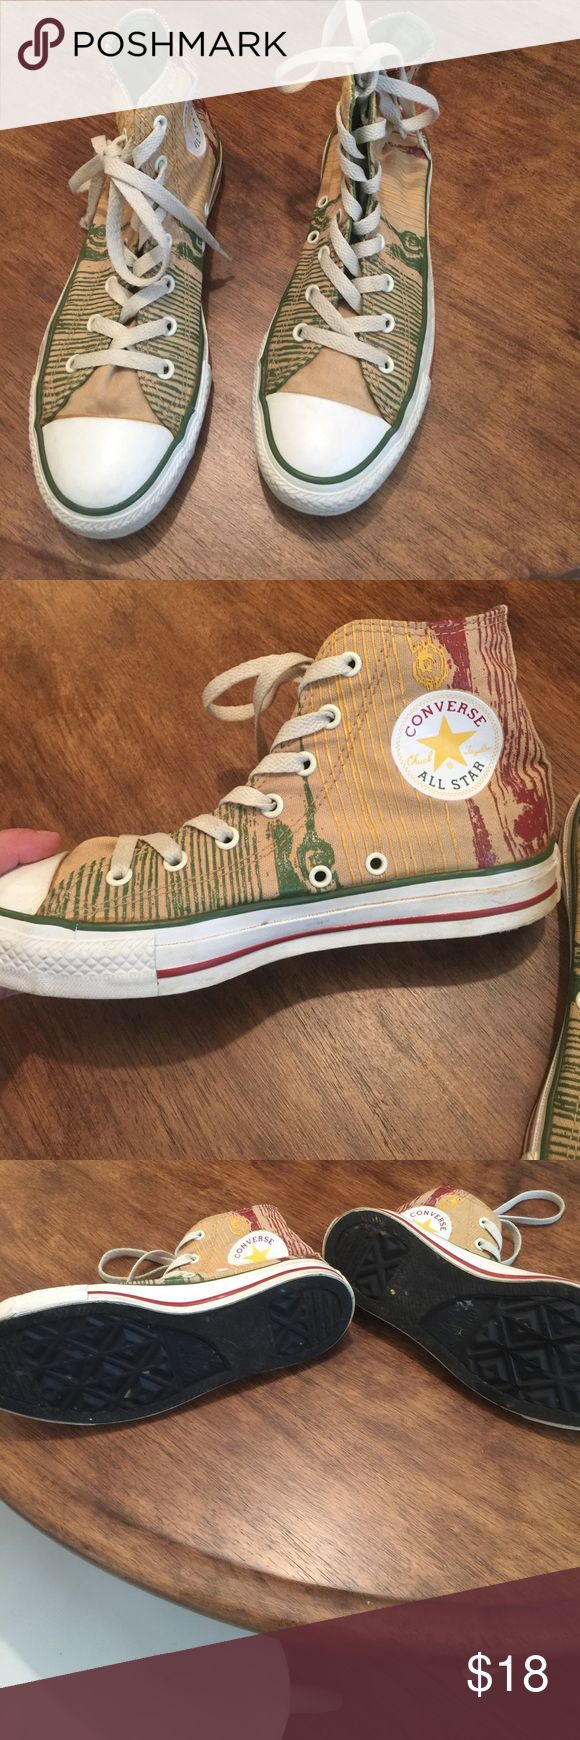 All star converse men's 5 ladies 7 These All Star Converse are high top and are in excellent shape haven't been worn much at all. They have a real fun print to them. Converse Shoes Sneakers